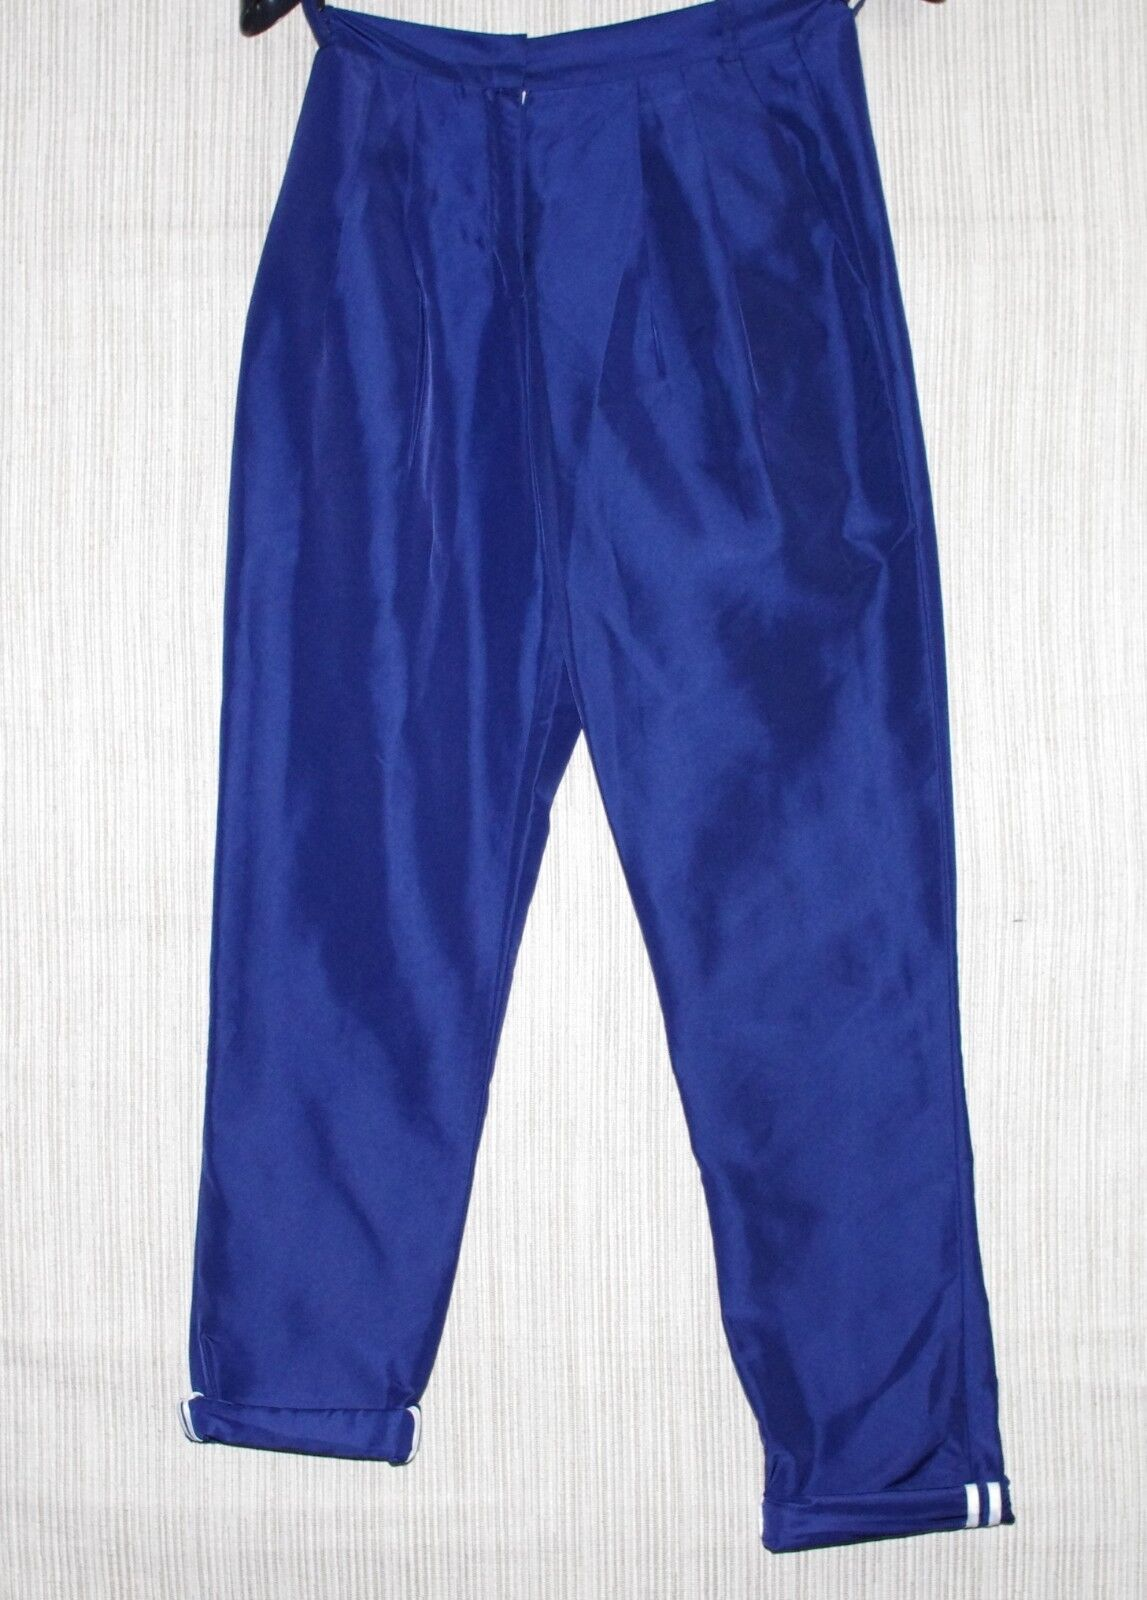 Livia Arena bluee Nylon Pleated Front Women's Pants Trousers Size  0